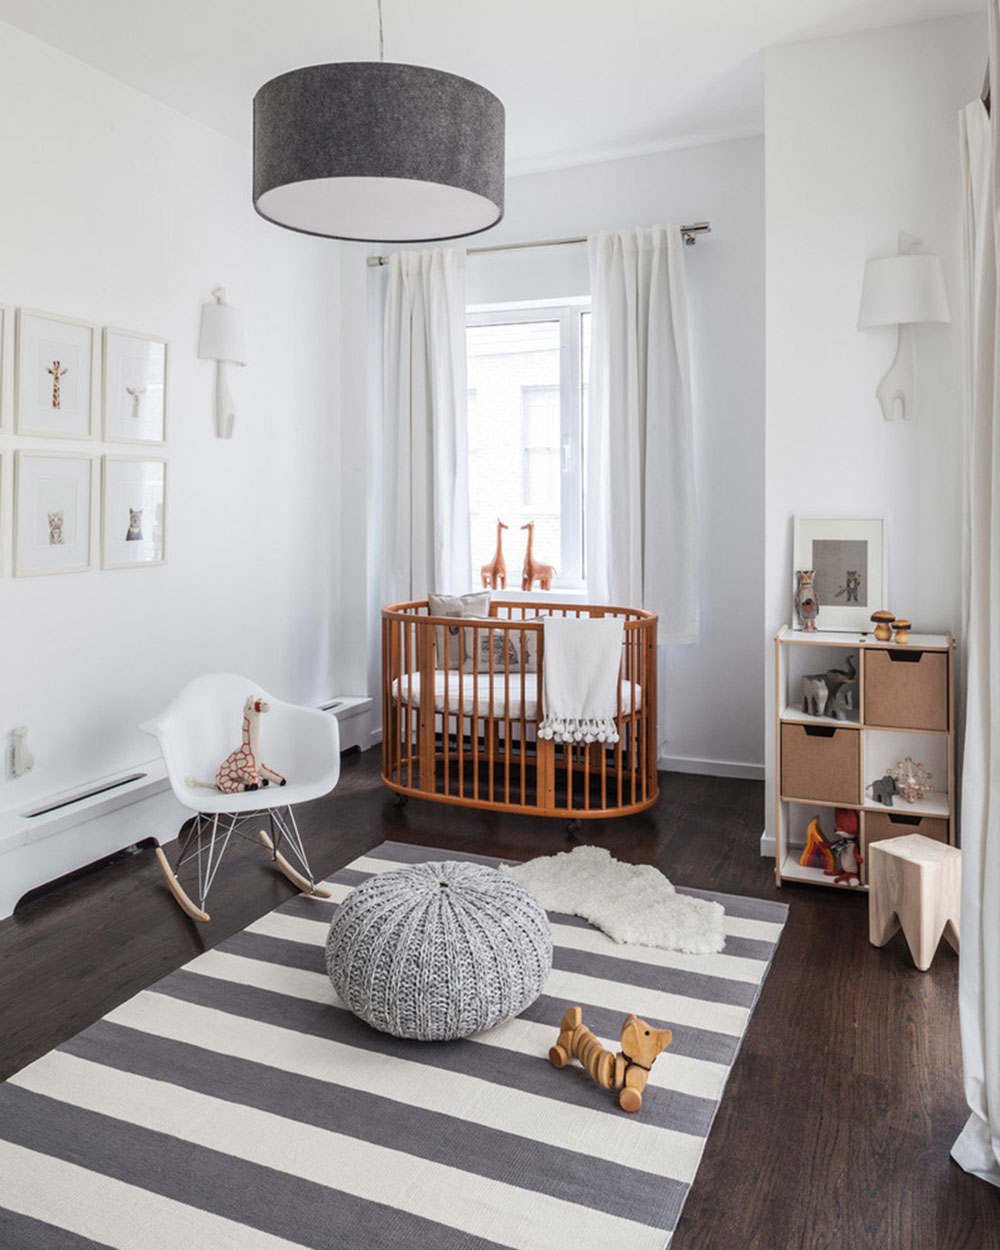 Your Little Kid\u0027s Room - Baby Nursery Interior Design Ideas